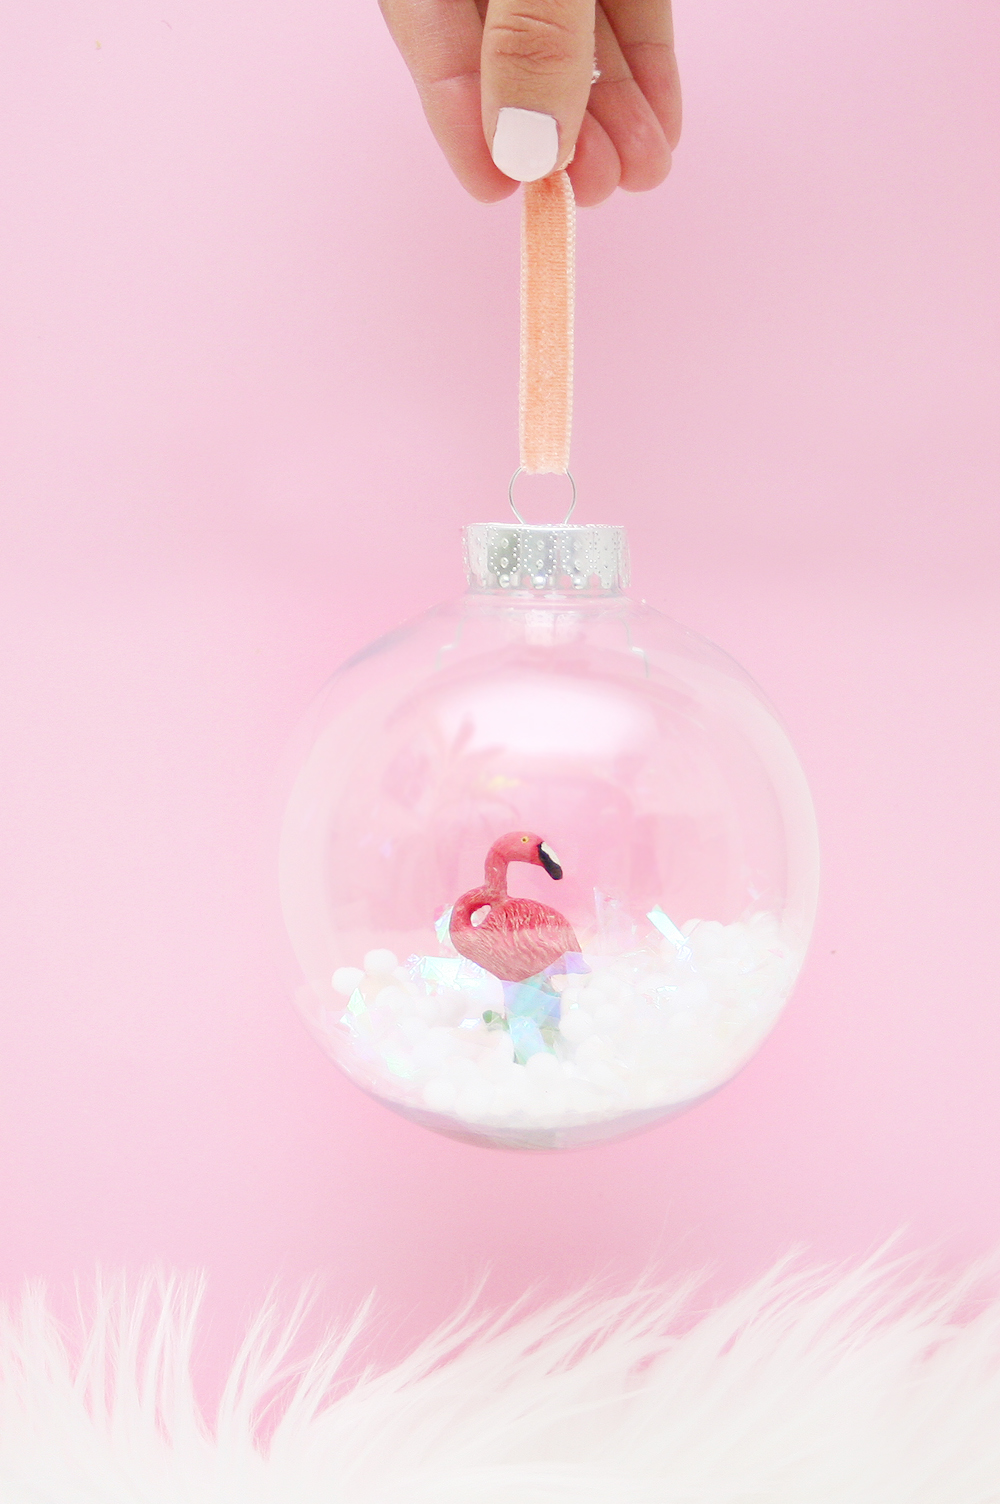 DIY snow glove Christmas ornament with a pink flamingo